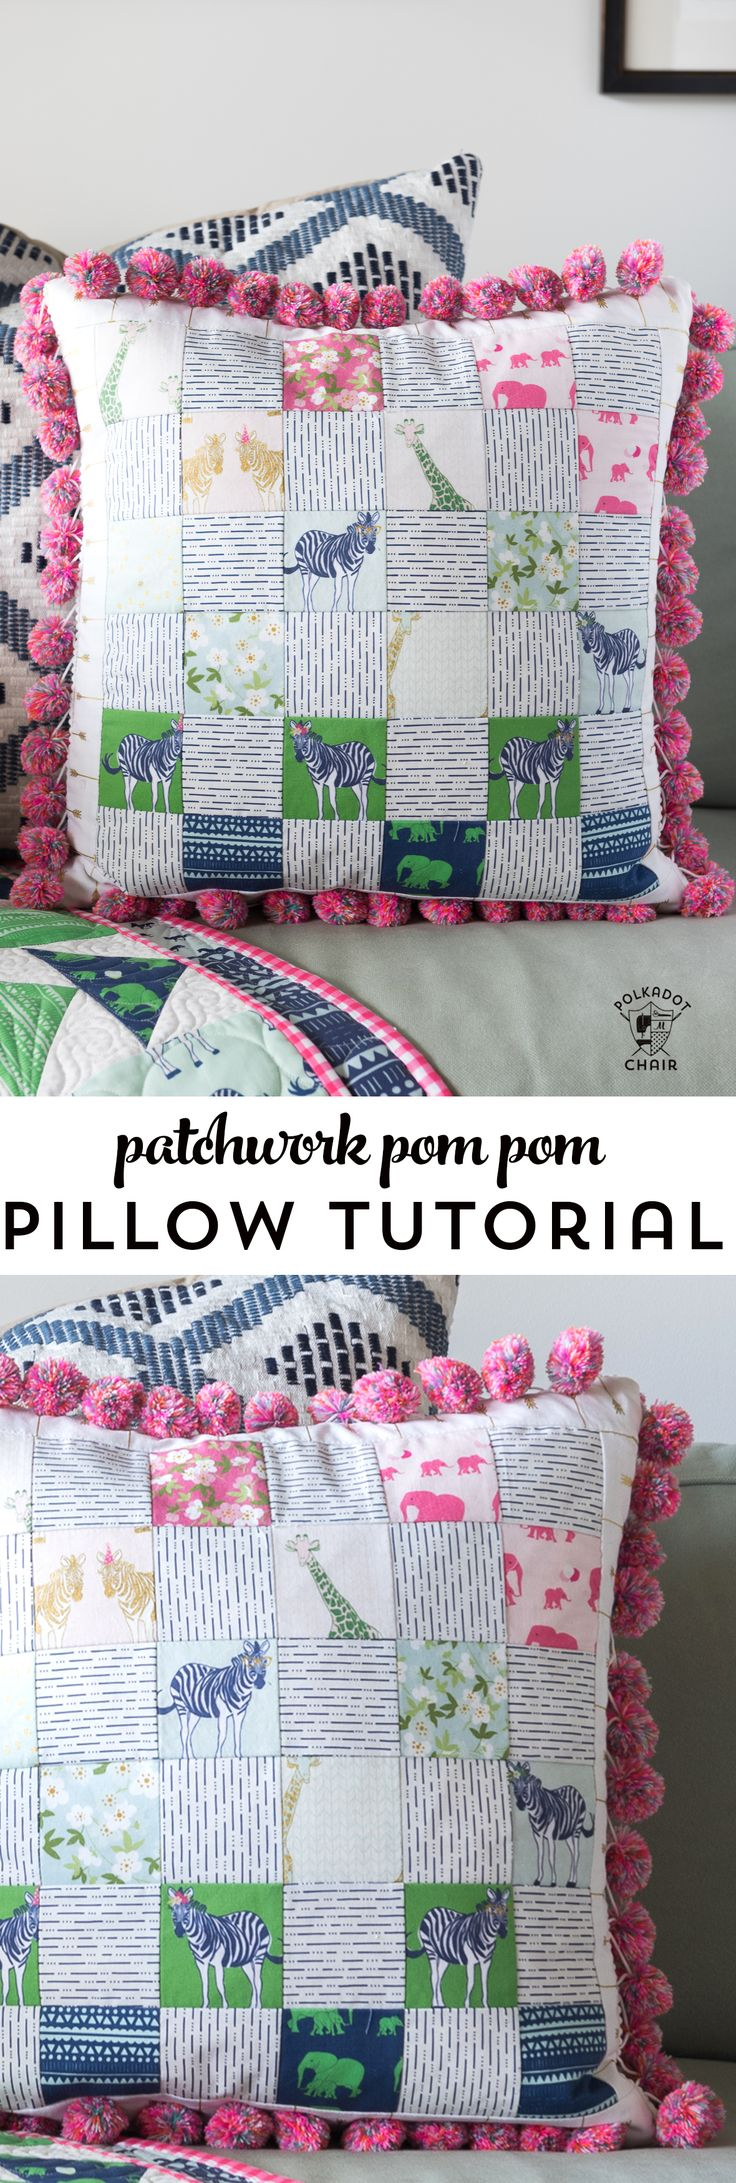 Free sewing pattern for a pom pom patchwork pillow. Uses a fun cheater way to ma...